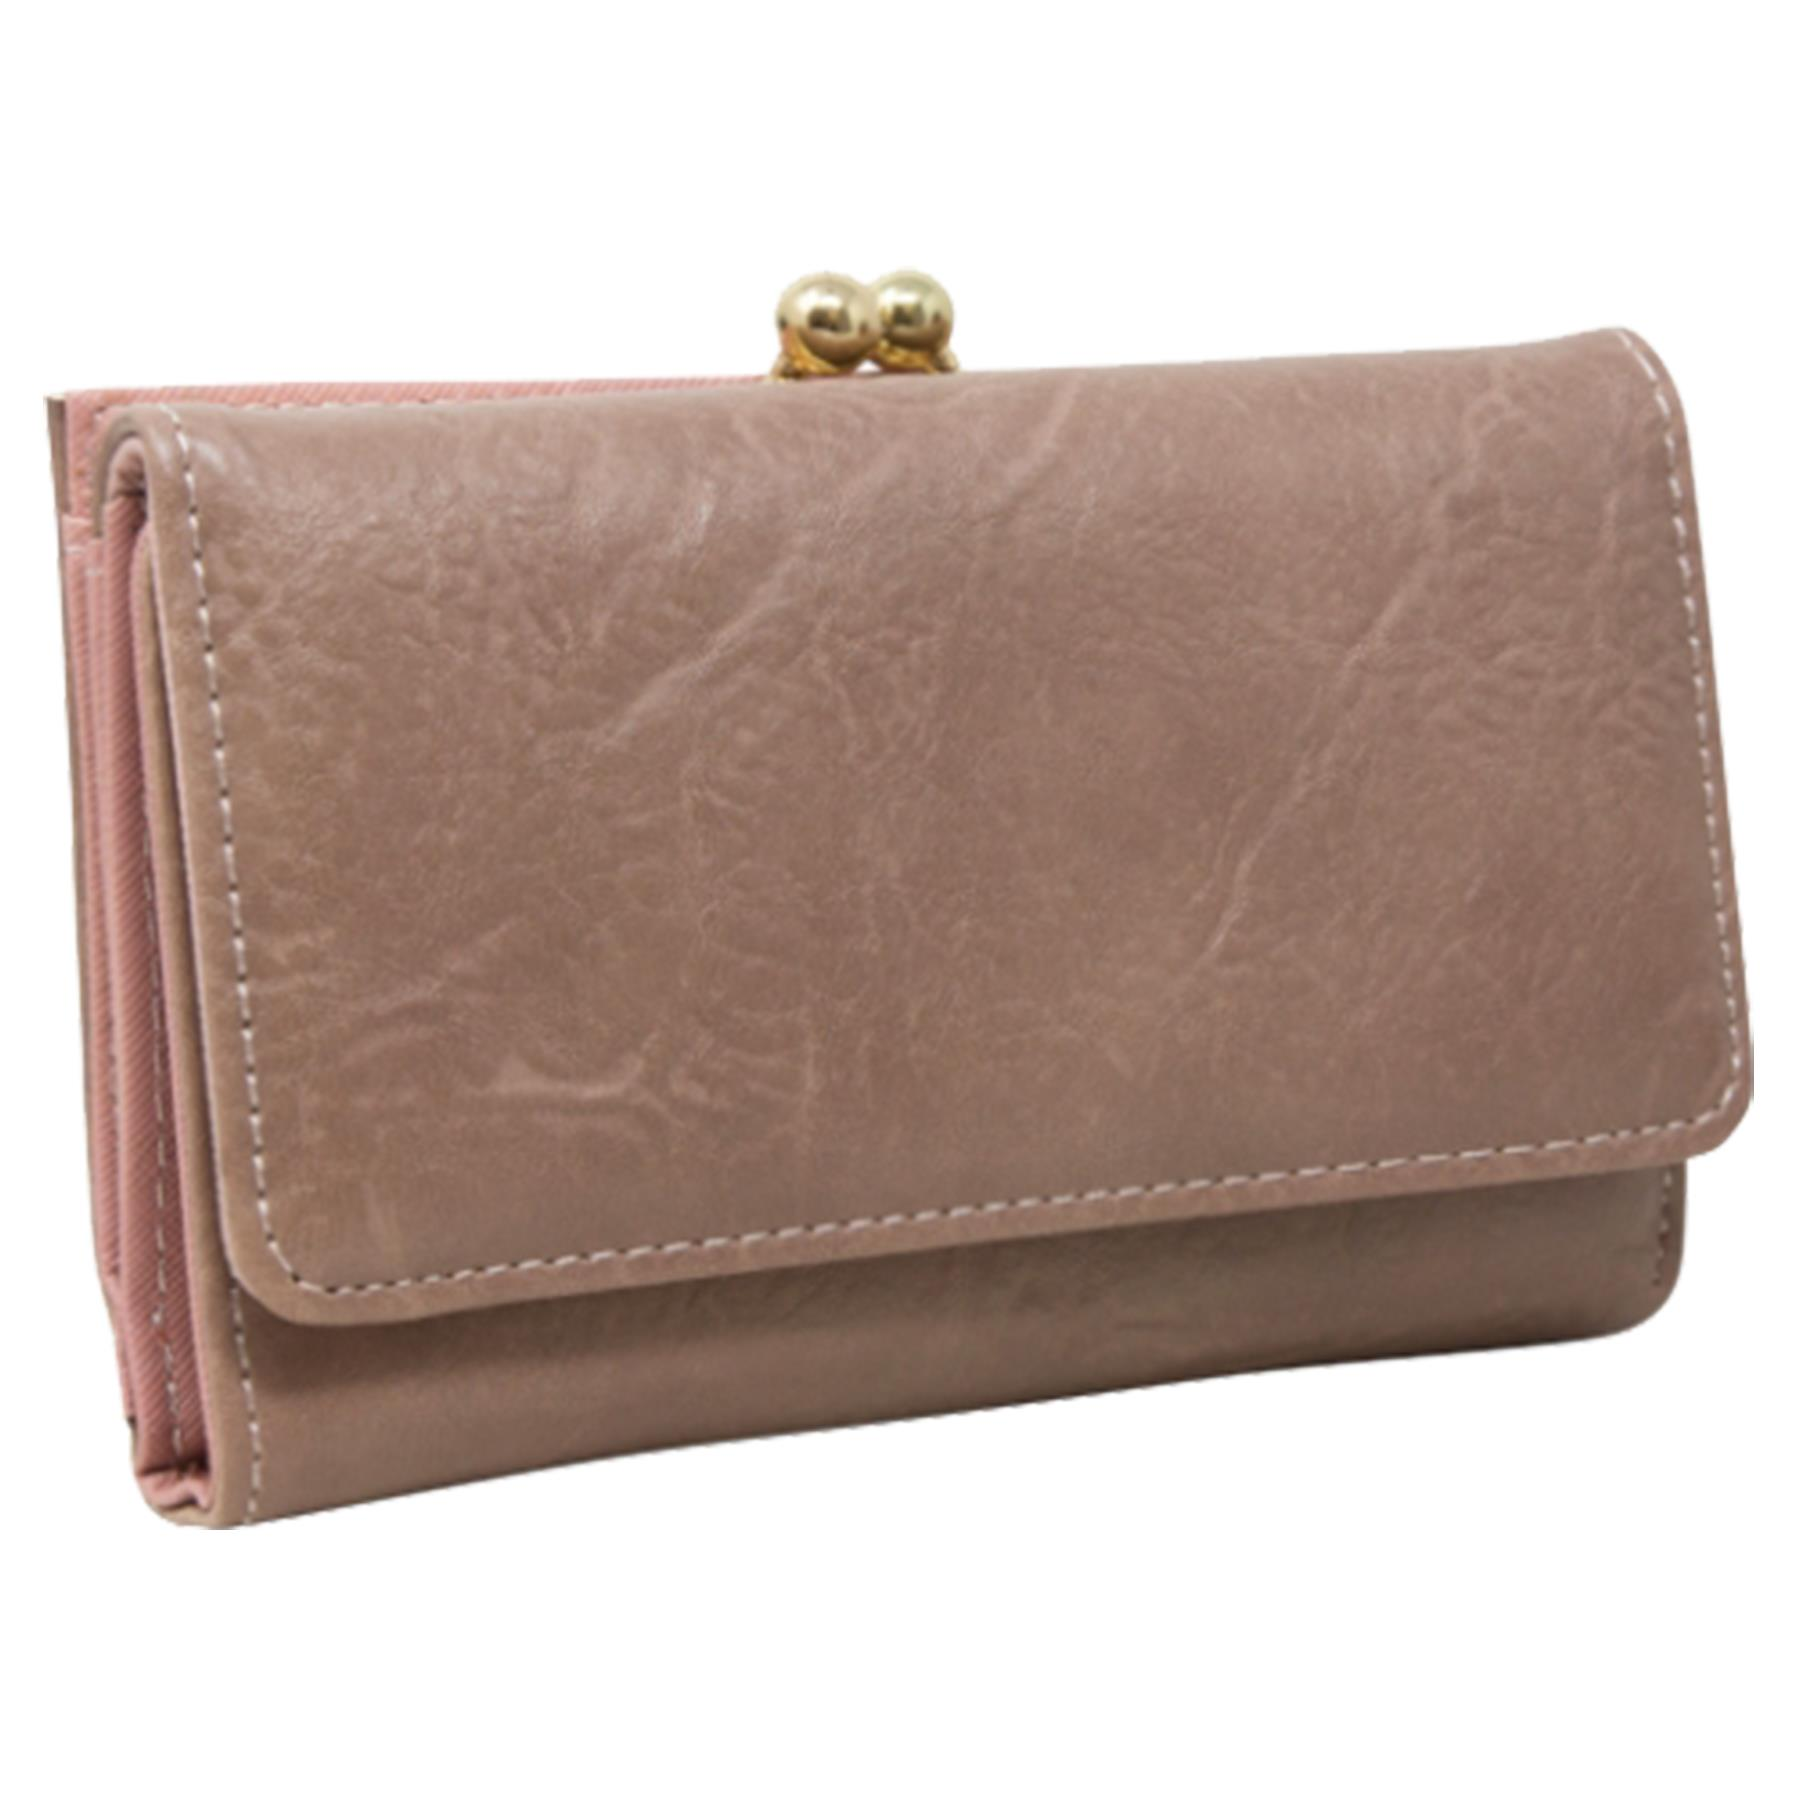 New-Synthetic-Leather-Kiss-Lock-Compartment-Ladies-Casual-Wallet-Purse thumbnail 19